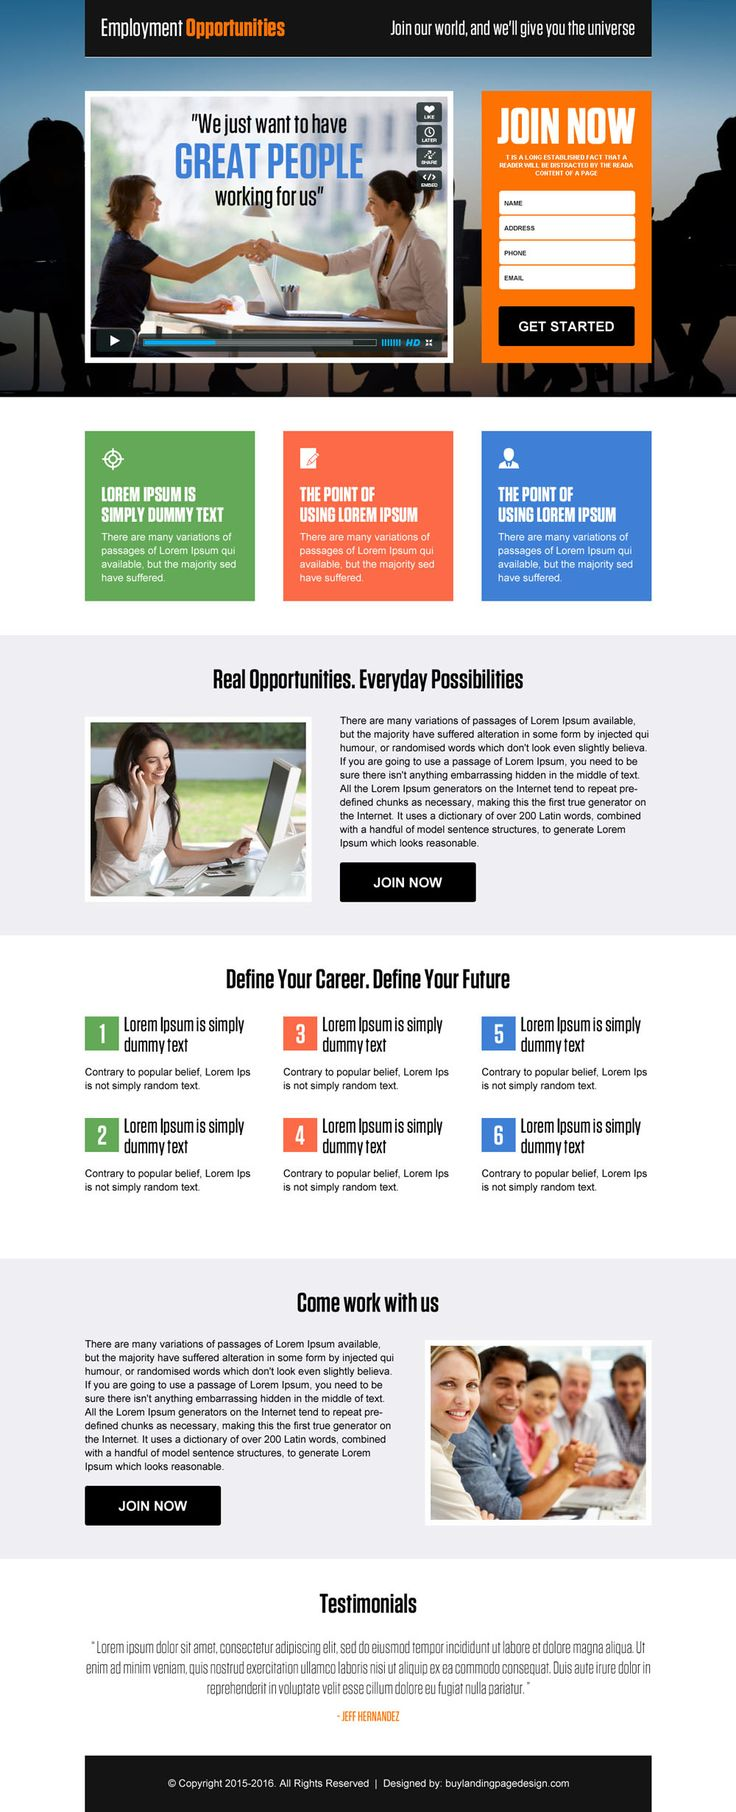 employment opportunities video lead capture landing page design template